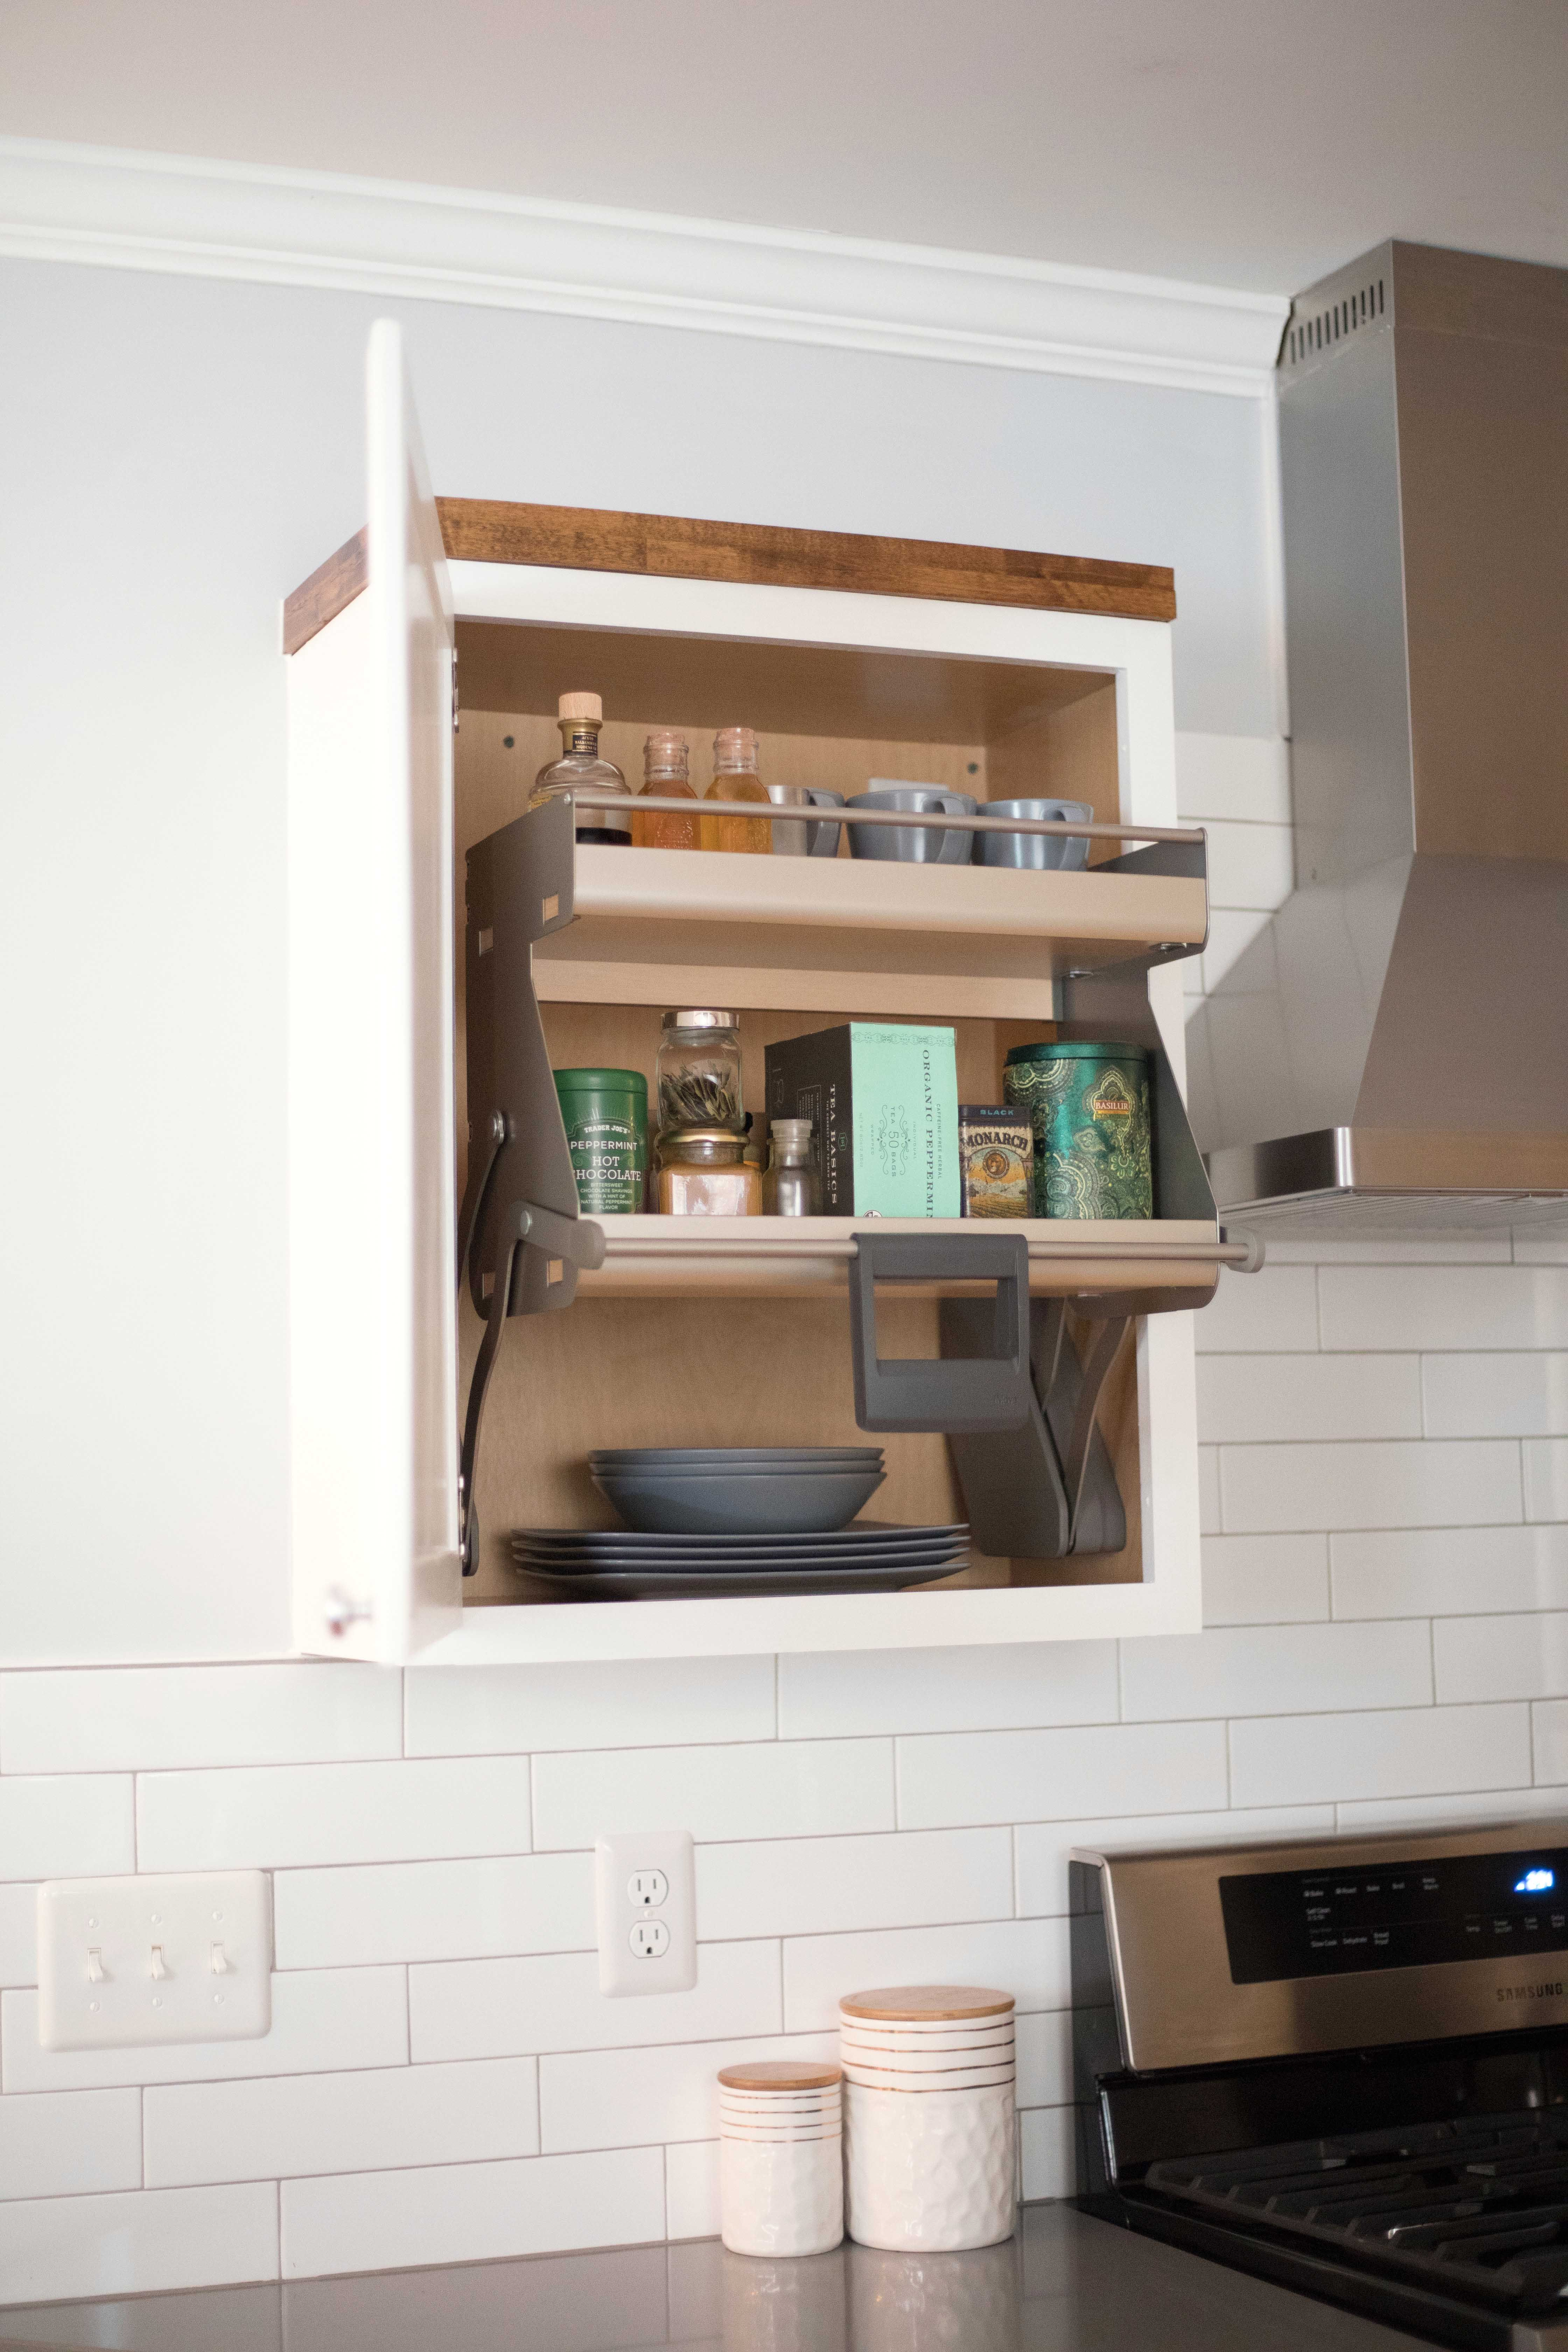 Imove Is Short For Intelligent Movement Bring Your Top Shelf To You For More Info Visit Us At Cleverstorage Com Imove How To Make Kitchen Cabinets Clever Kitchen Storage Kitchen Storage Solutions